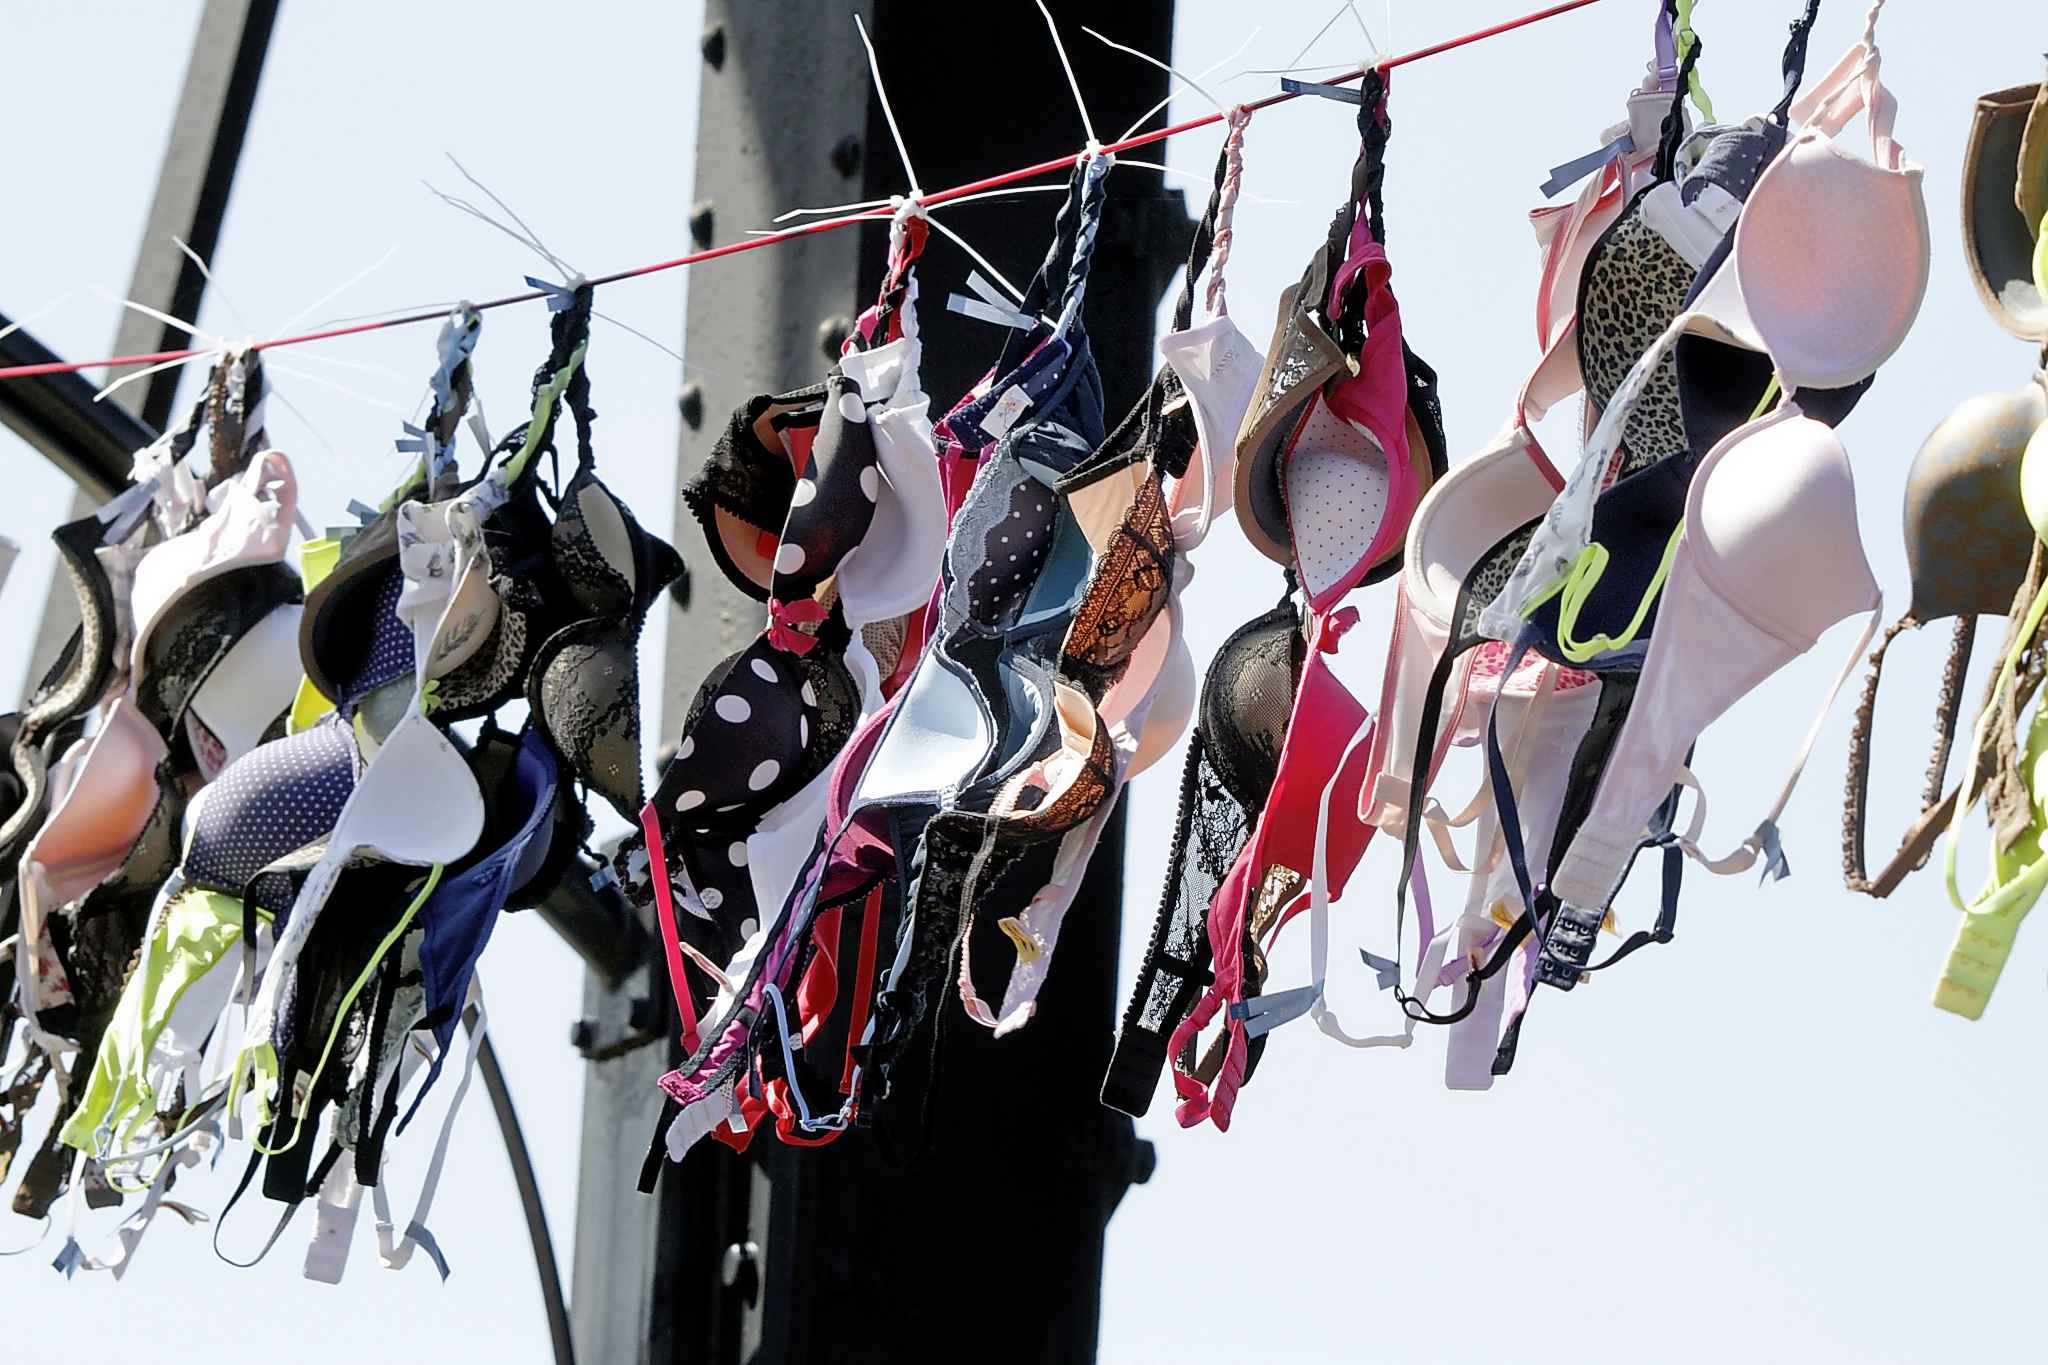 Bras are finicky because they have to be handwashed and you can't wring them out. (Keith Srakocic / Associated Press files)